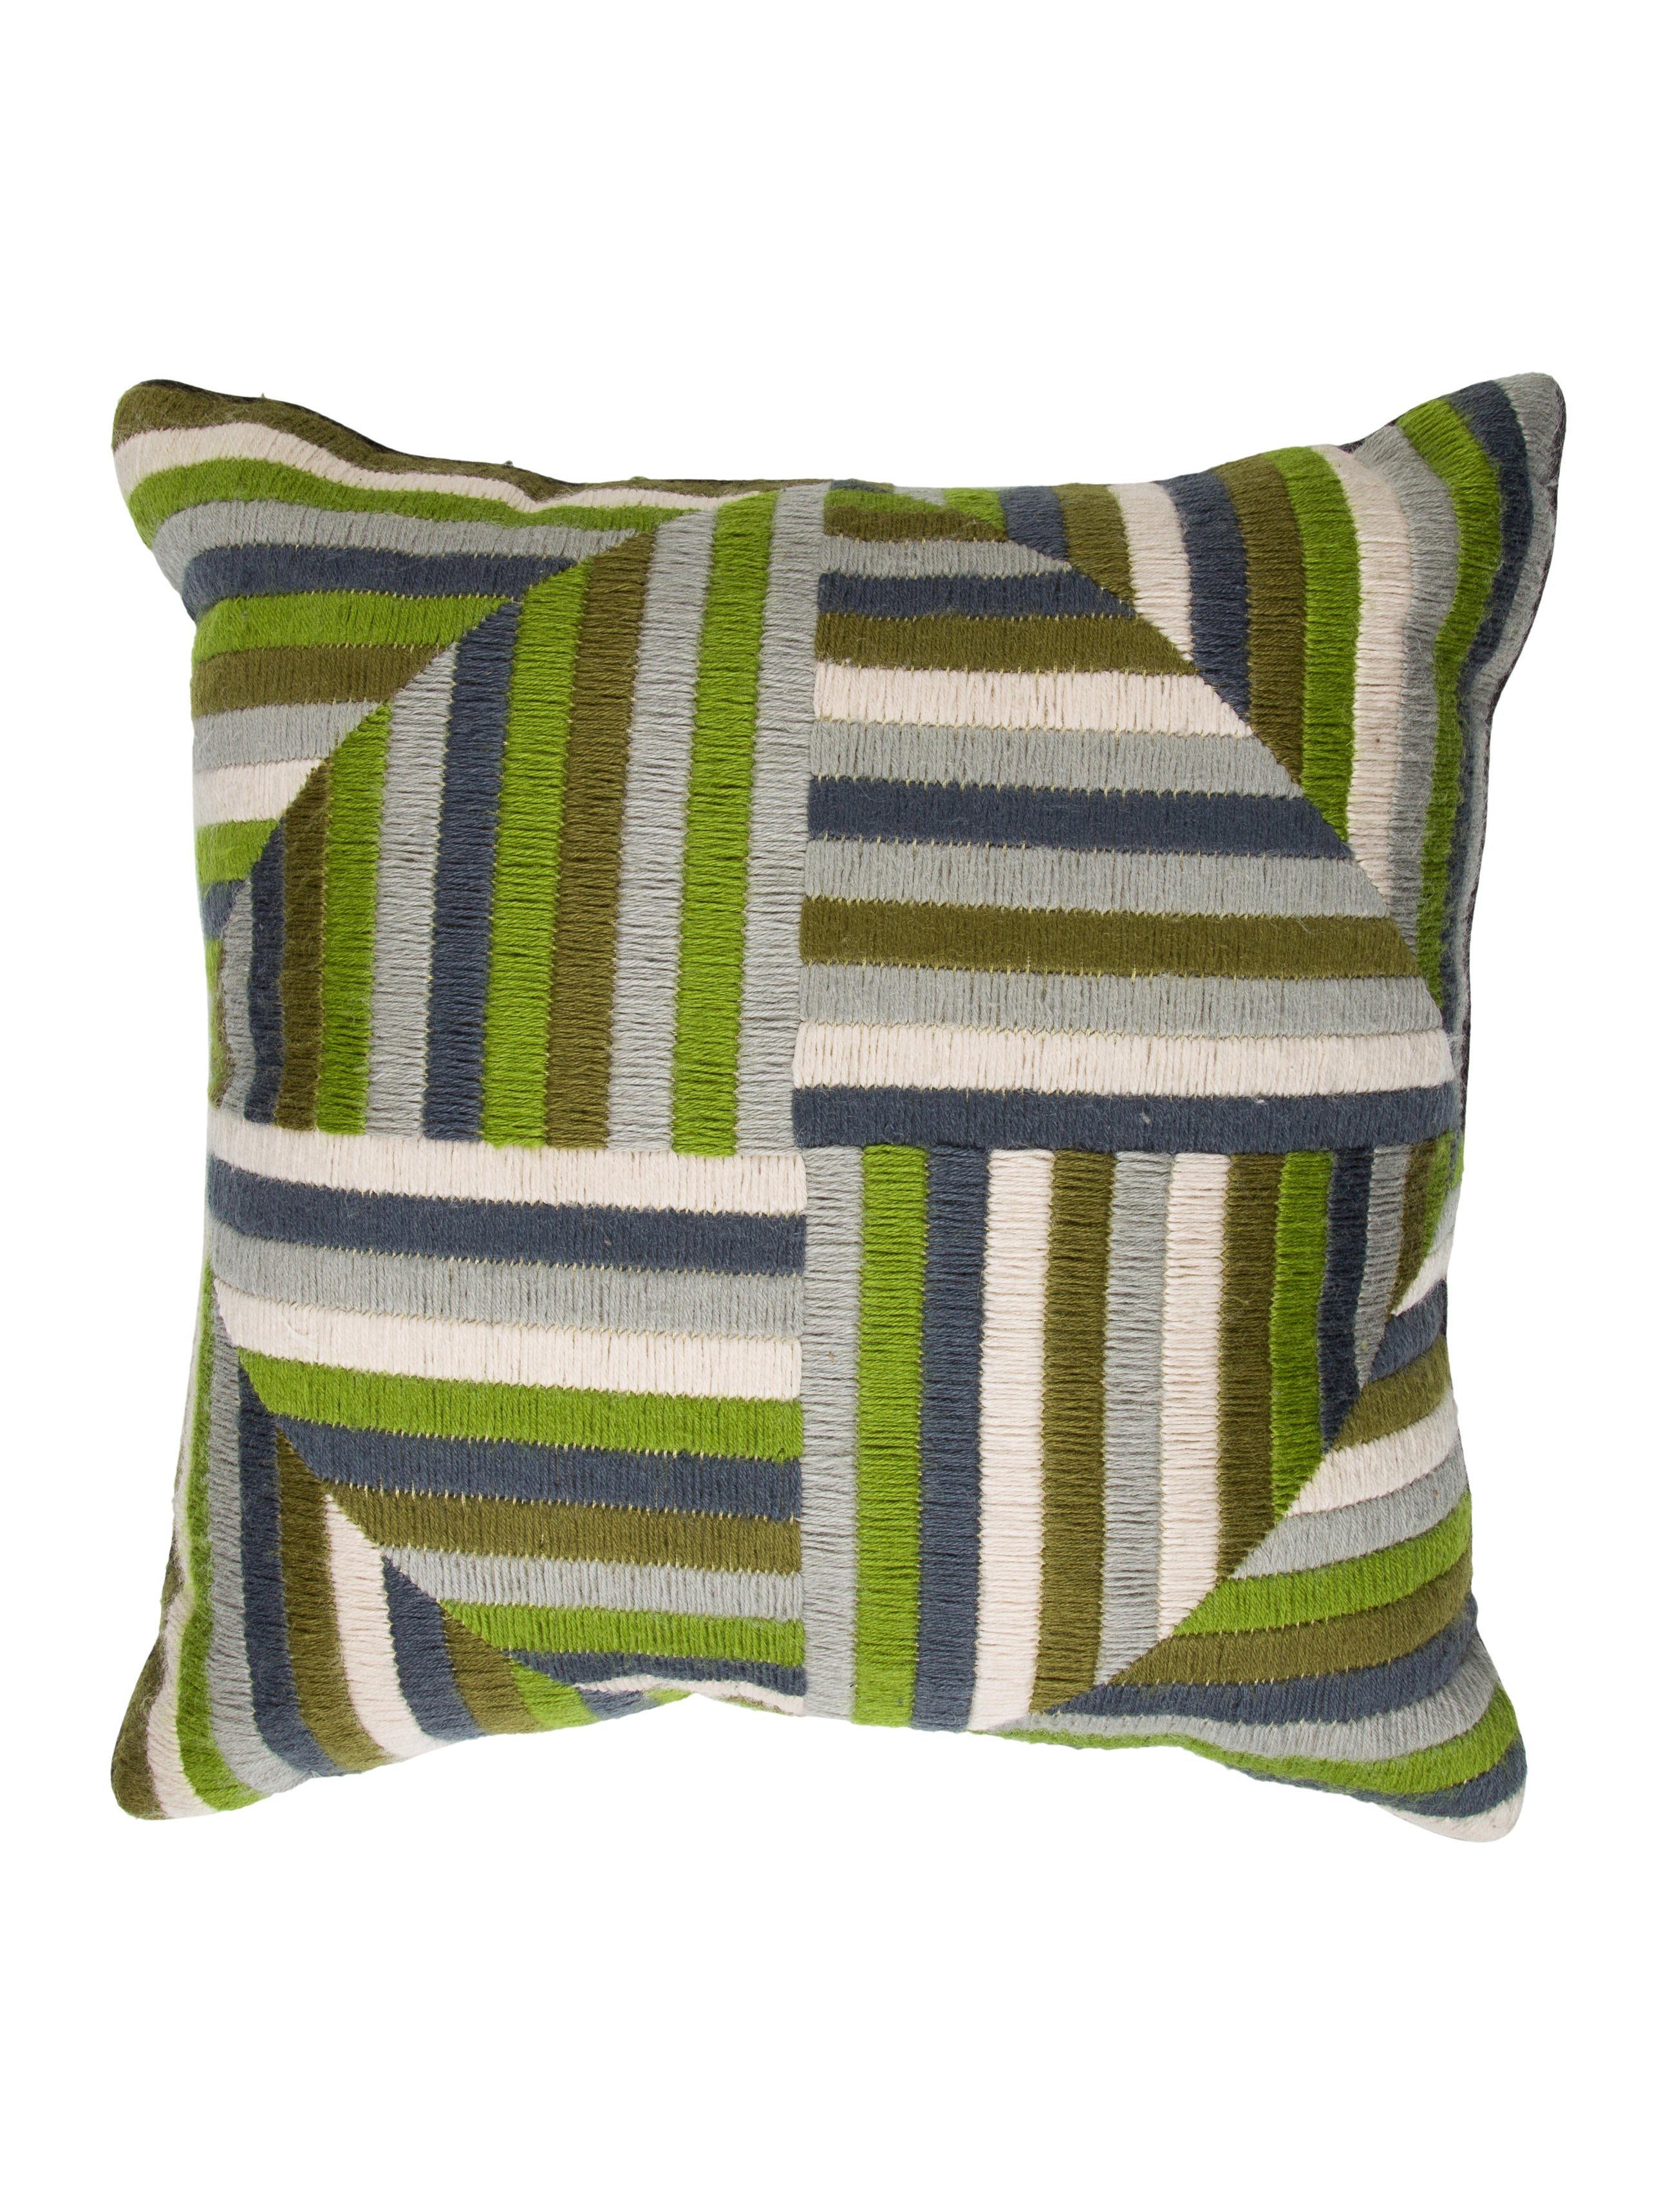 Throw Pillows Justice : Jonathan Adler Geometric Throw Pillow - Bedding And Bath - JTADL20751 The RealReal